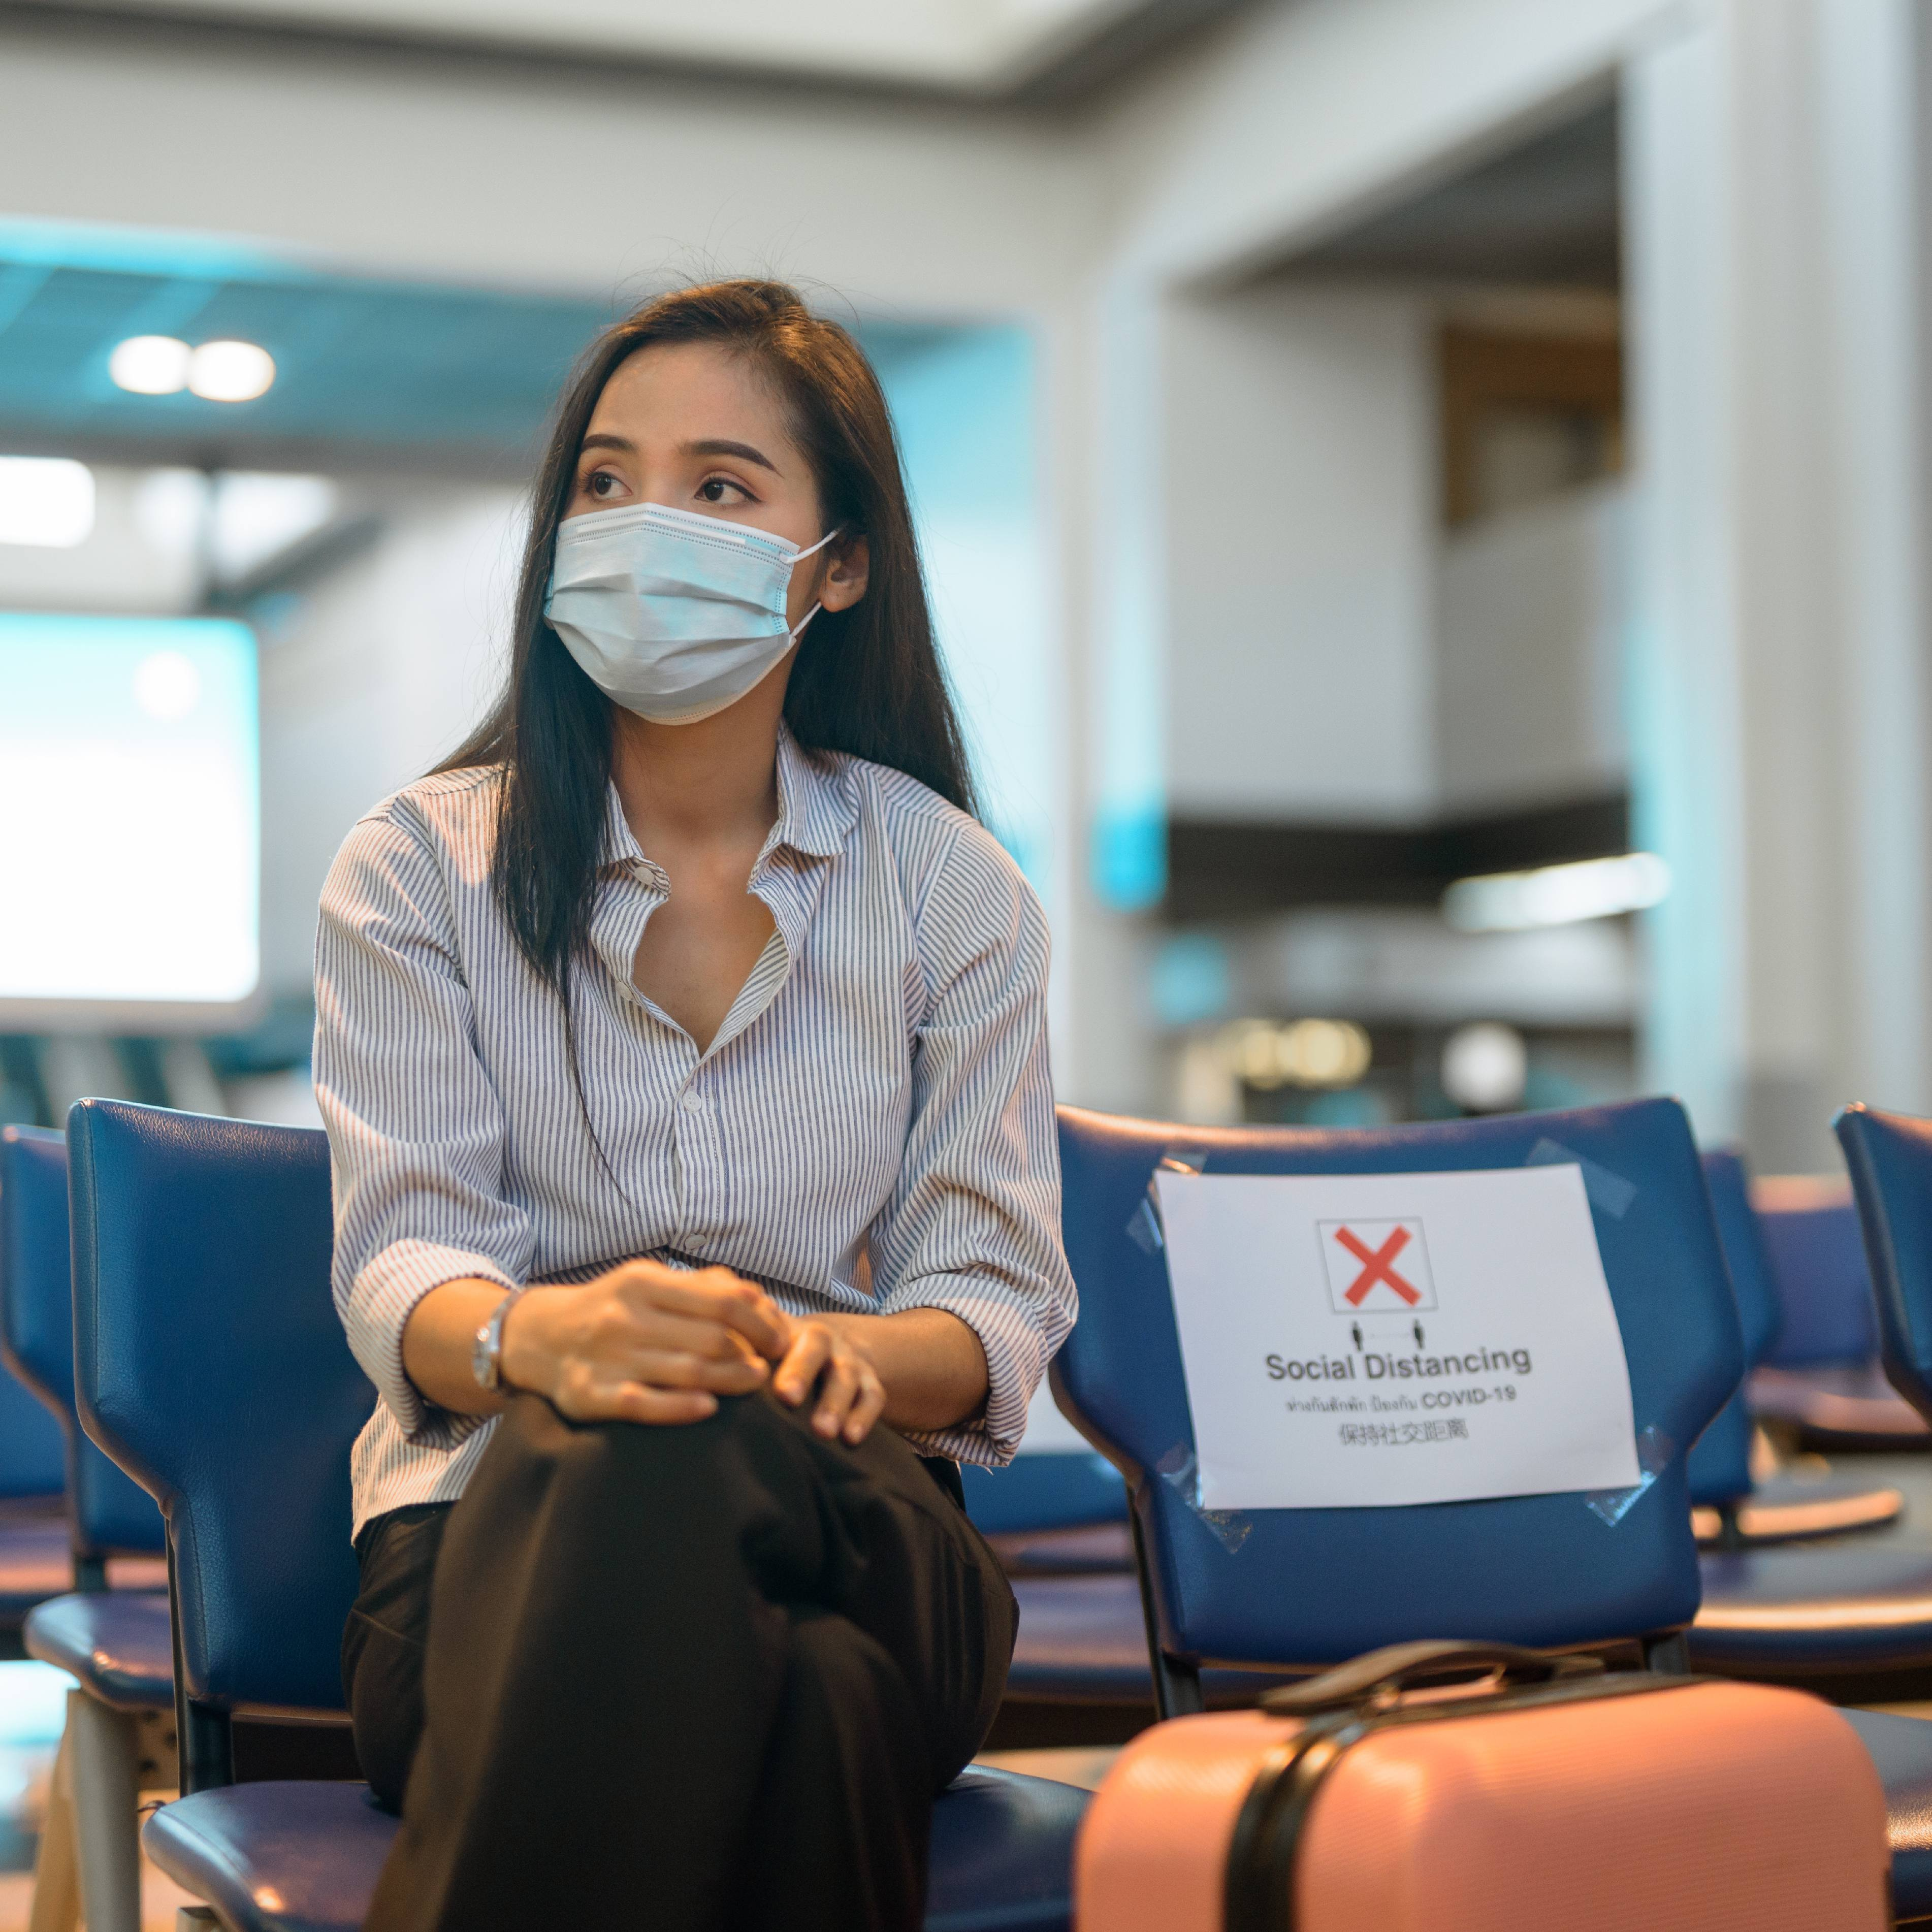 a young adult woman, perhaps Asian or Latina, sitting in an airport with a suitcase and social distancing COVID-19 signs on the seats